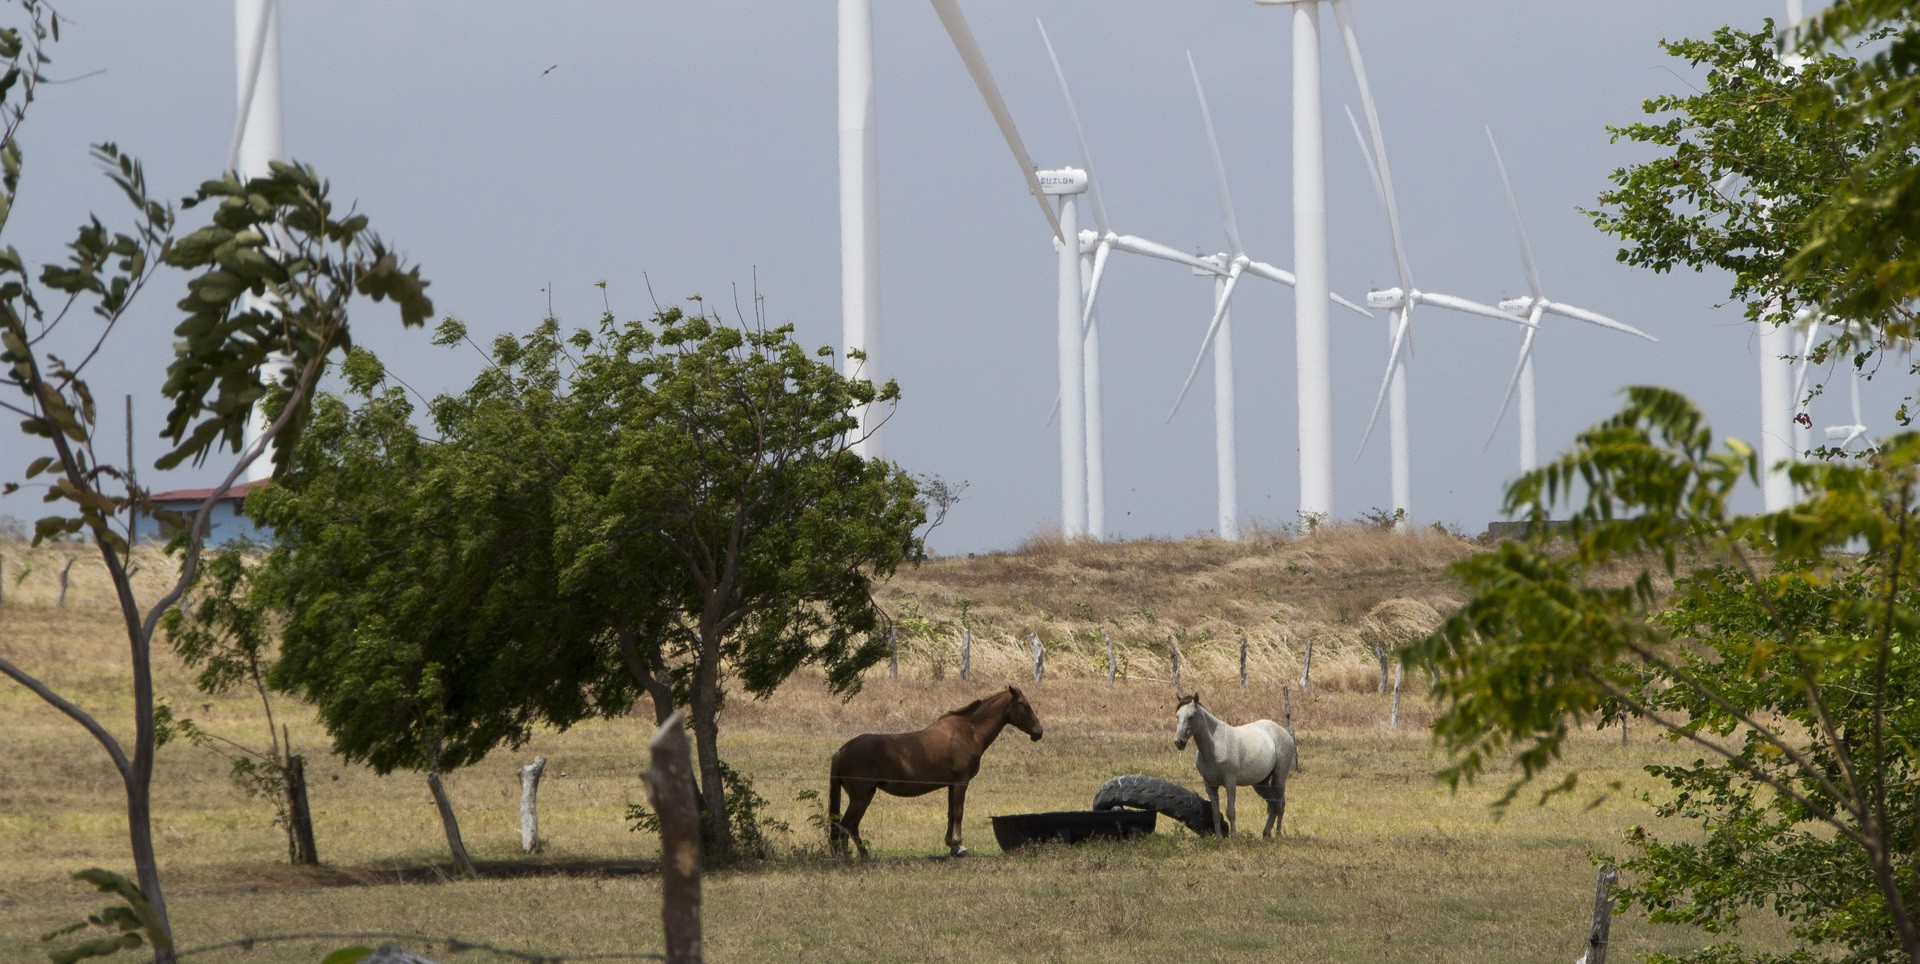 Horses graze on land in Rivas, Nicaragua, near wind turbines. The turbines are quiet, emitting a low buzz, which leaves both locals and animal life undisturbed. (Photo by Danika Worthington)